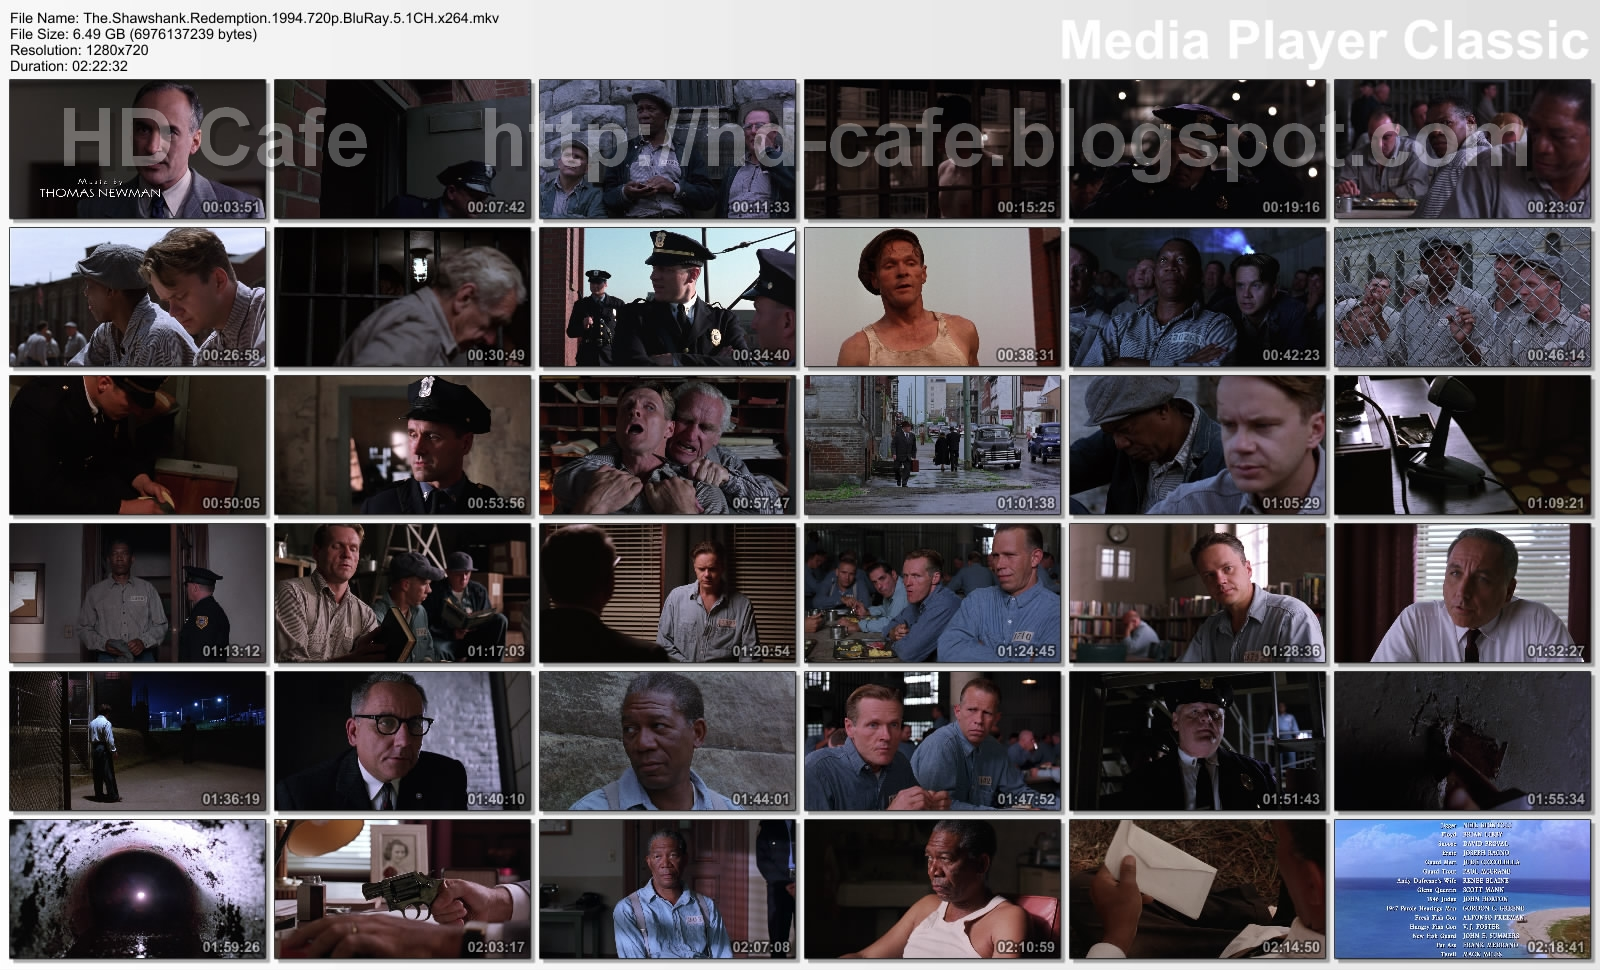 Shawshank redemption movie analysis